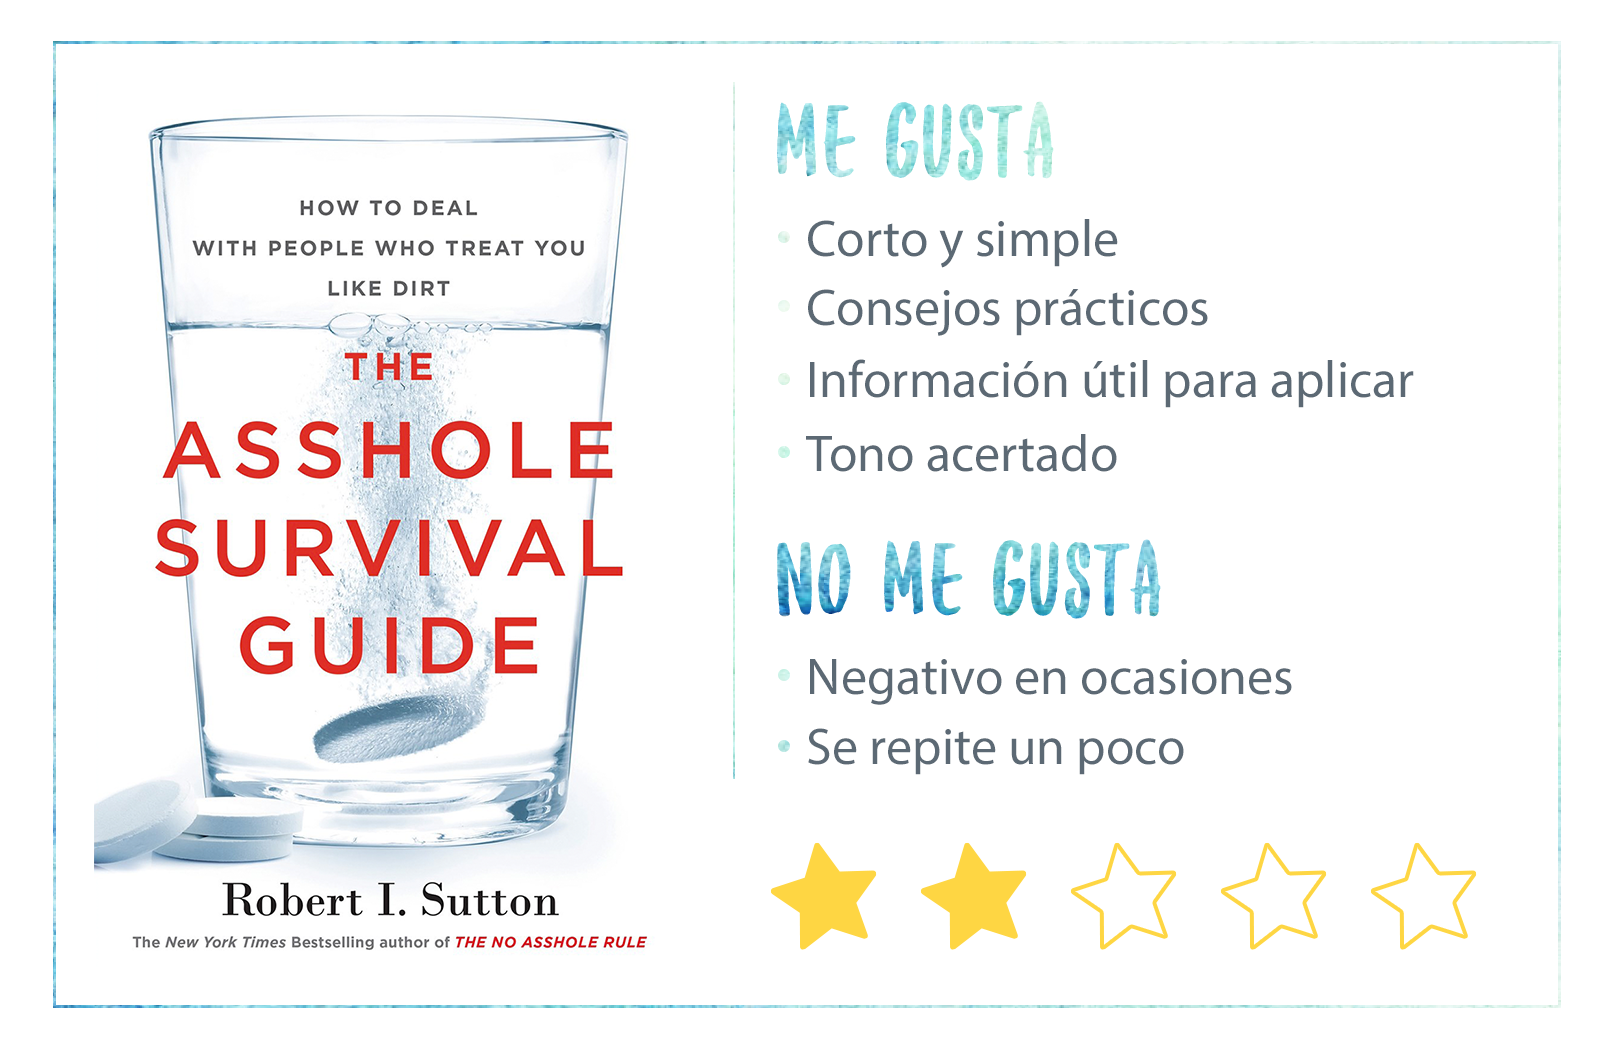 Nota The Asshole Survival Guide